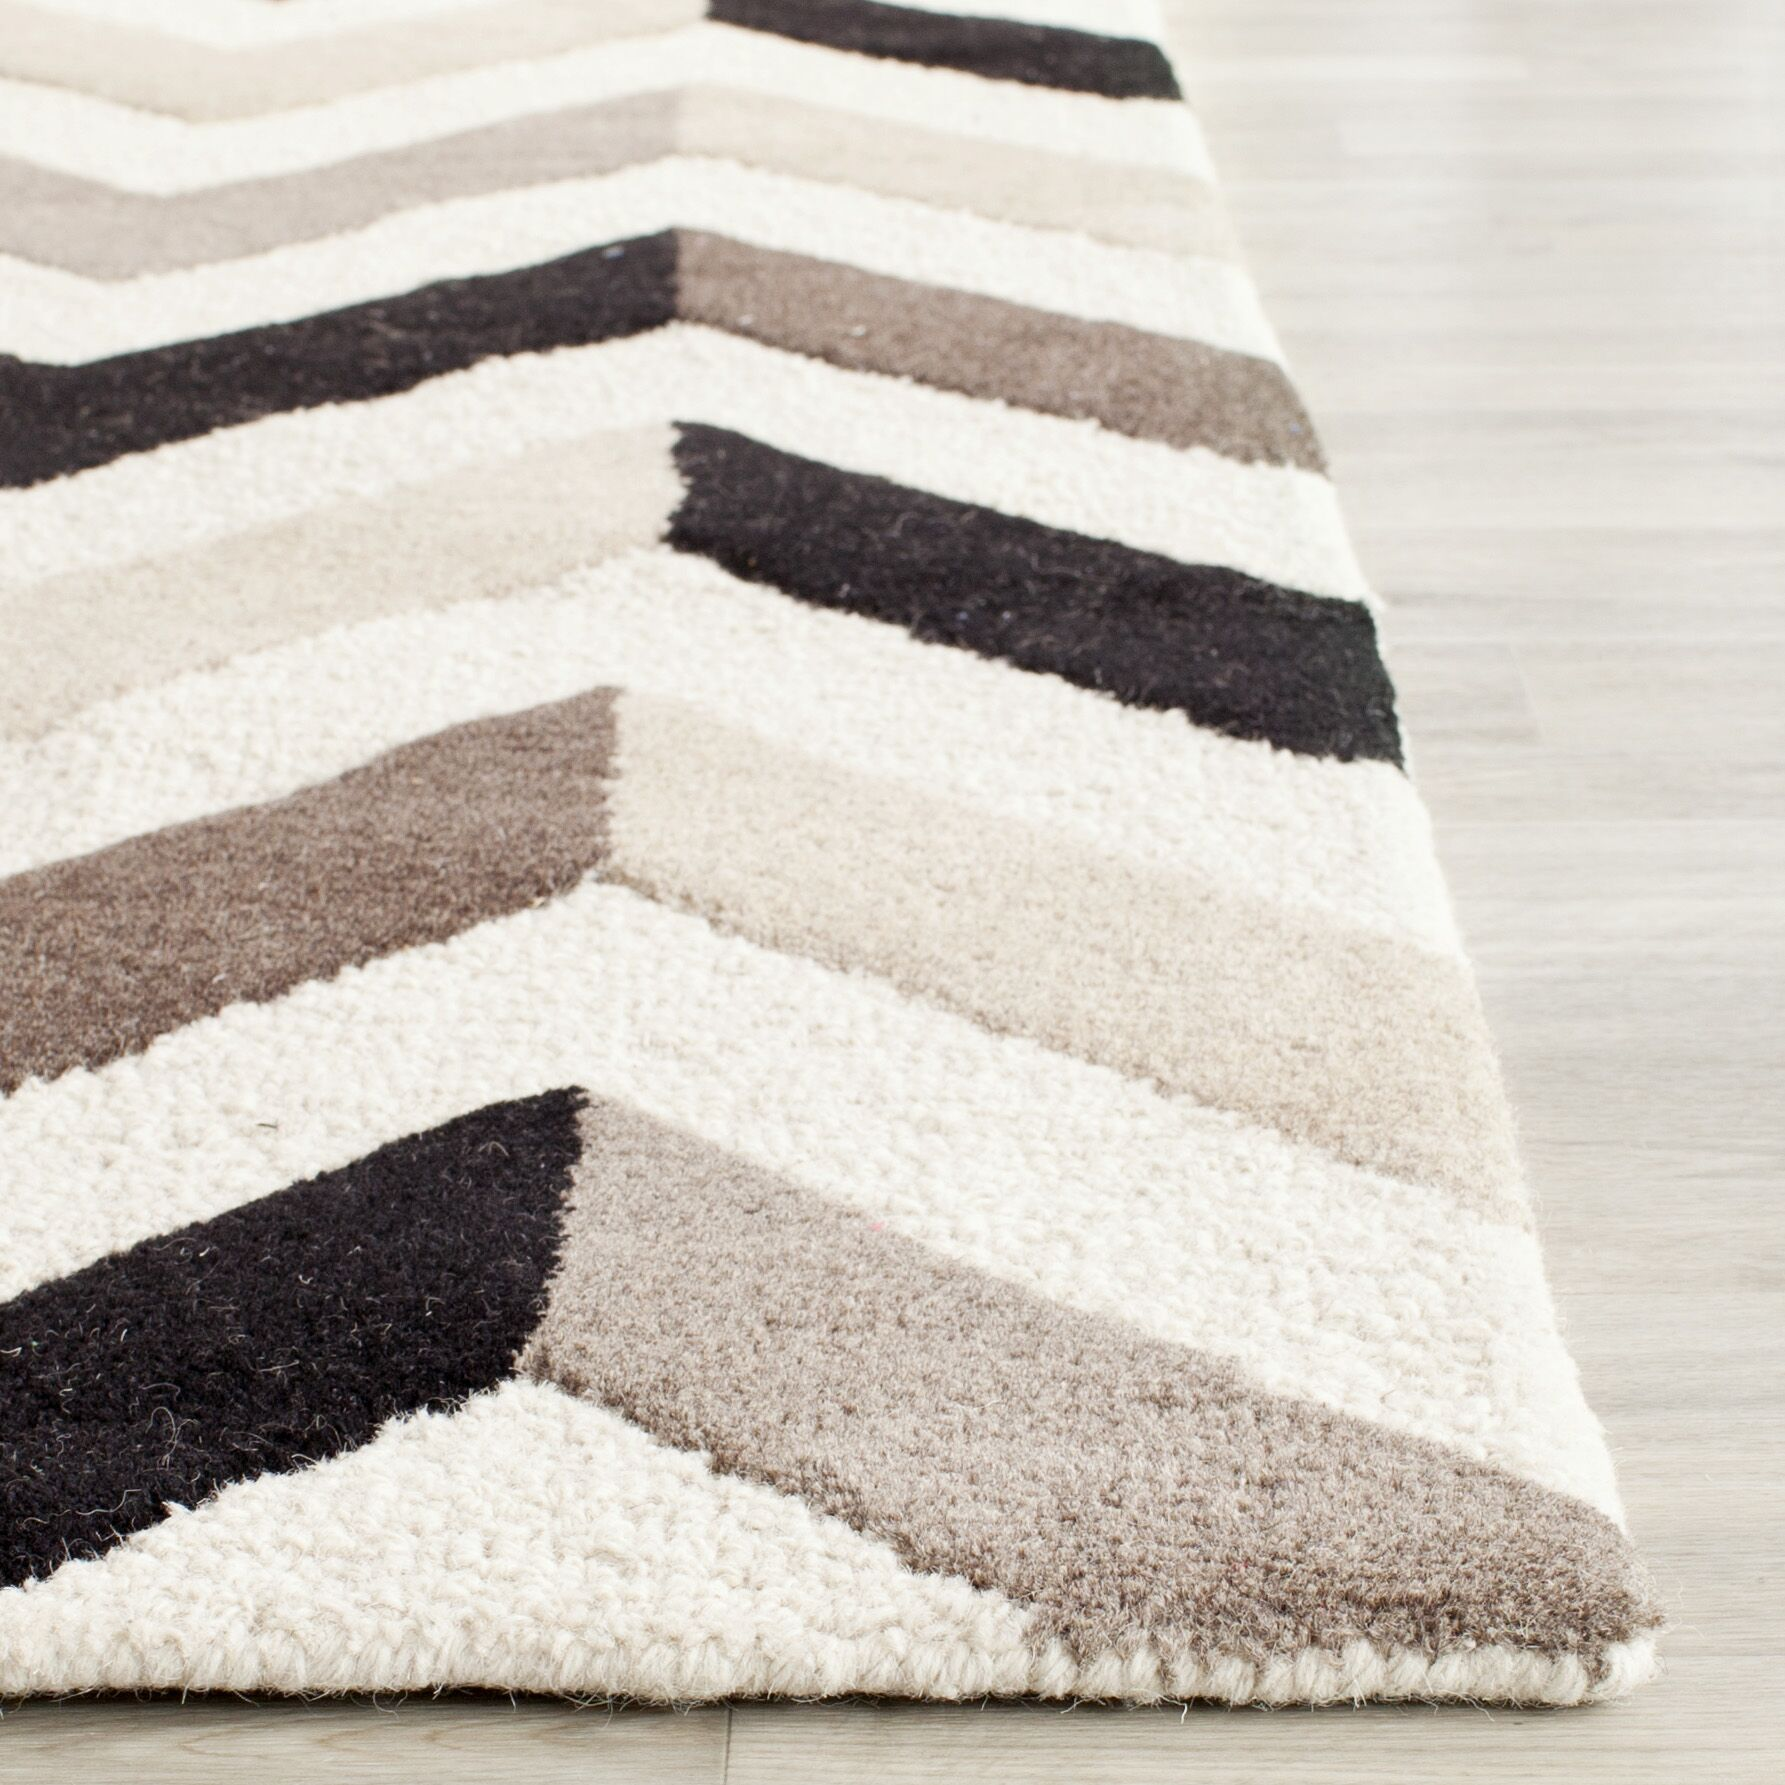 Obrian Hand-Tufted Ivory/Black Area Rug Rug Size: Rectangle 3' x 5'